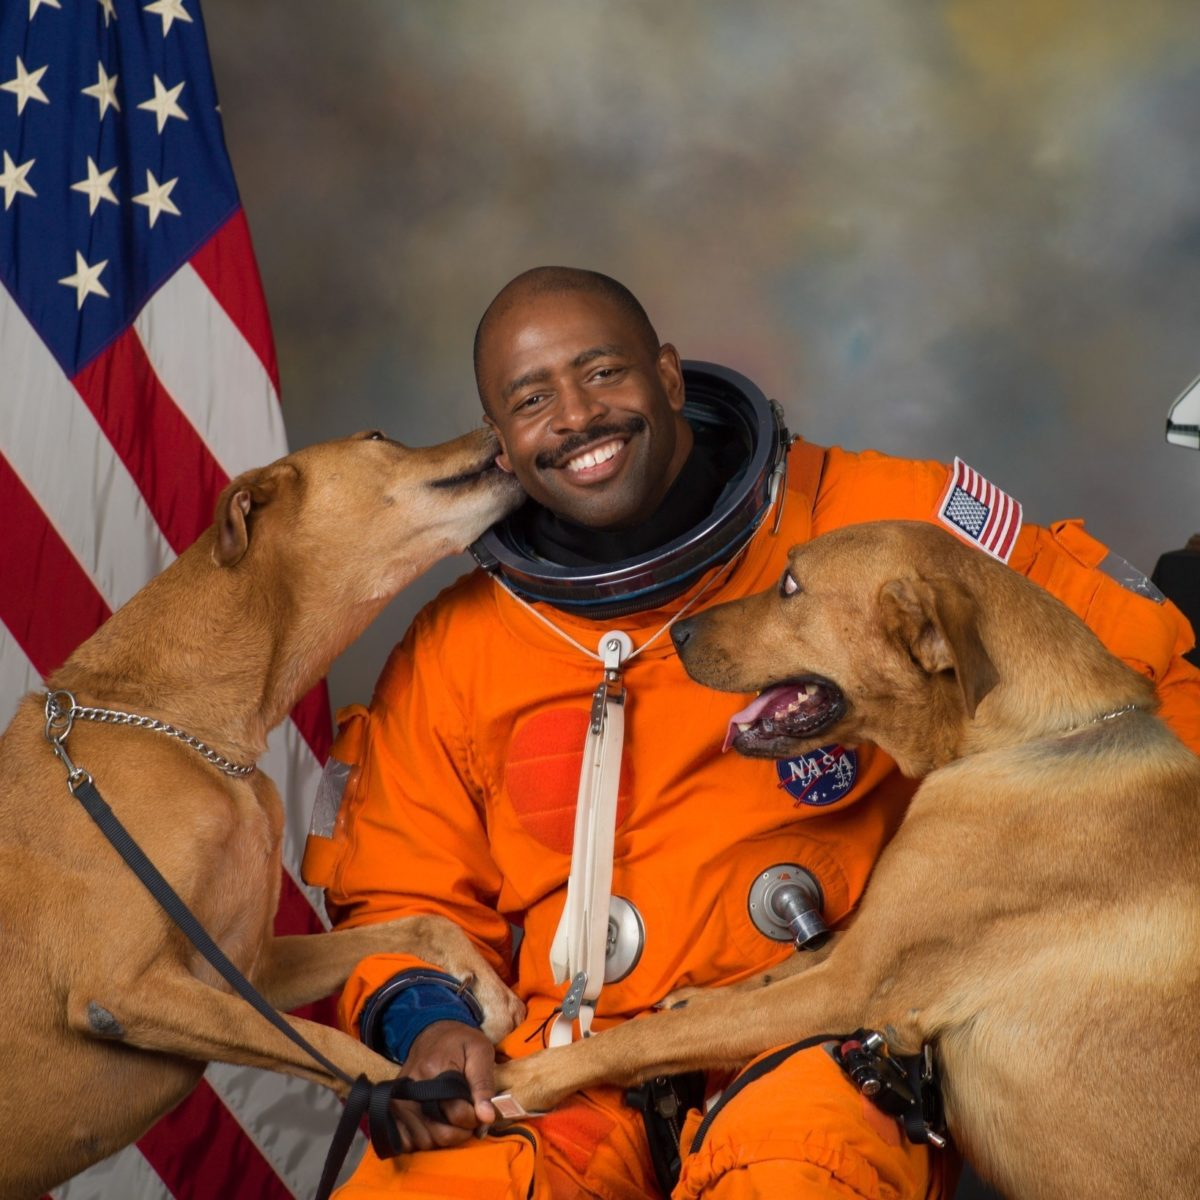 Leland melvin with dogs